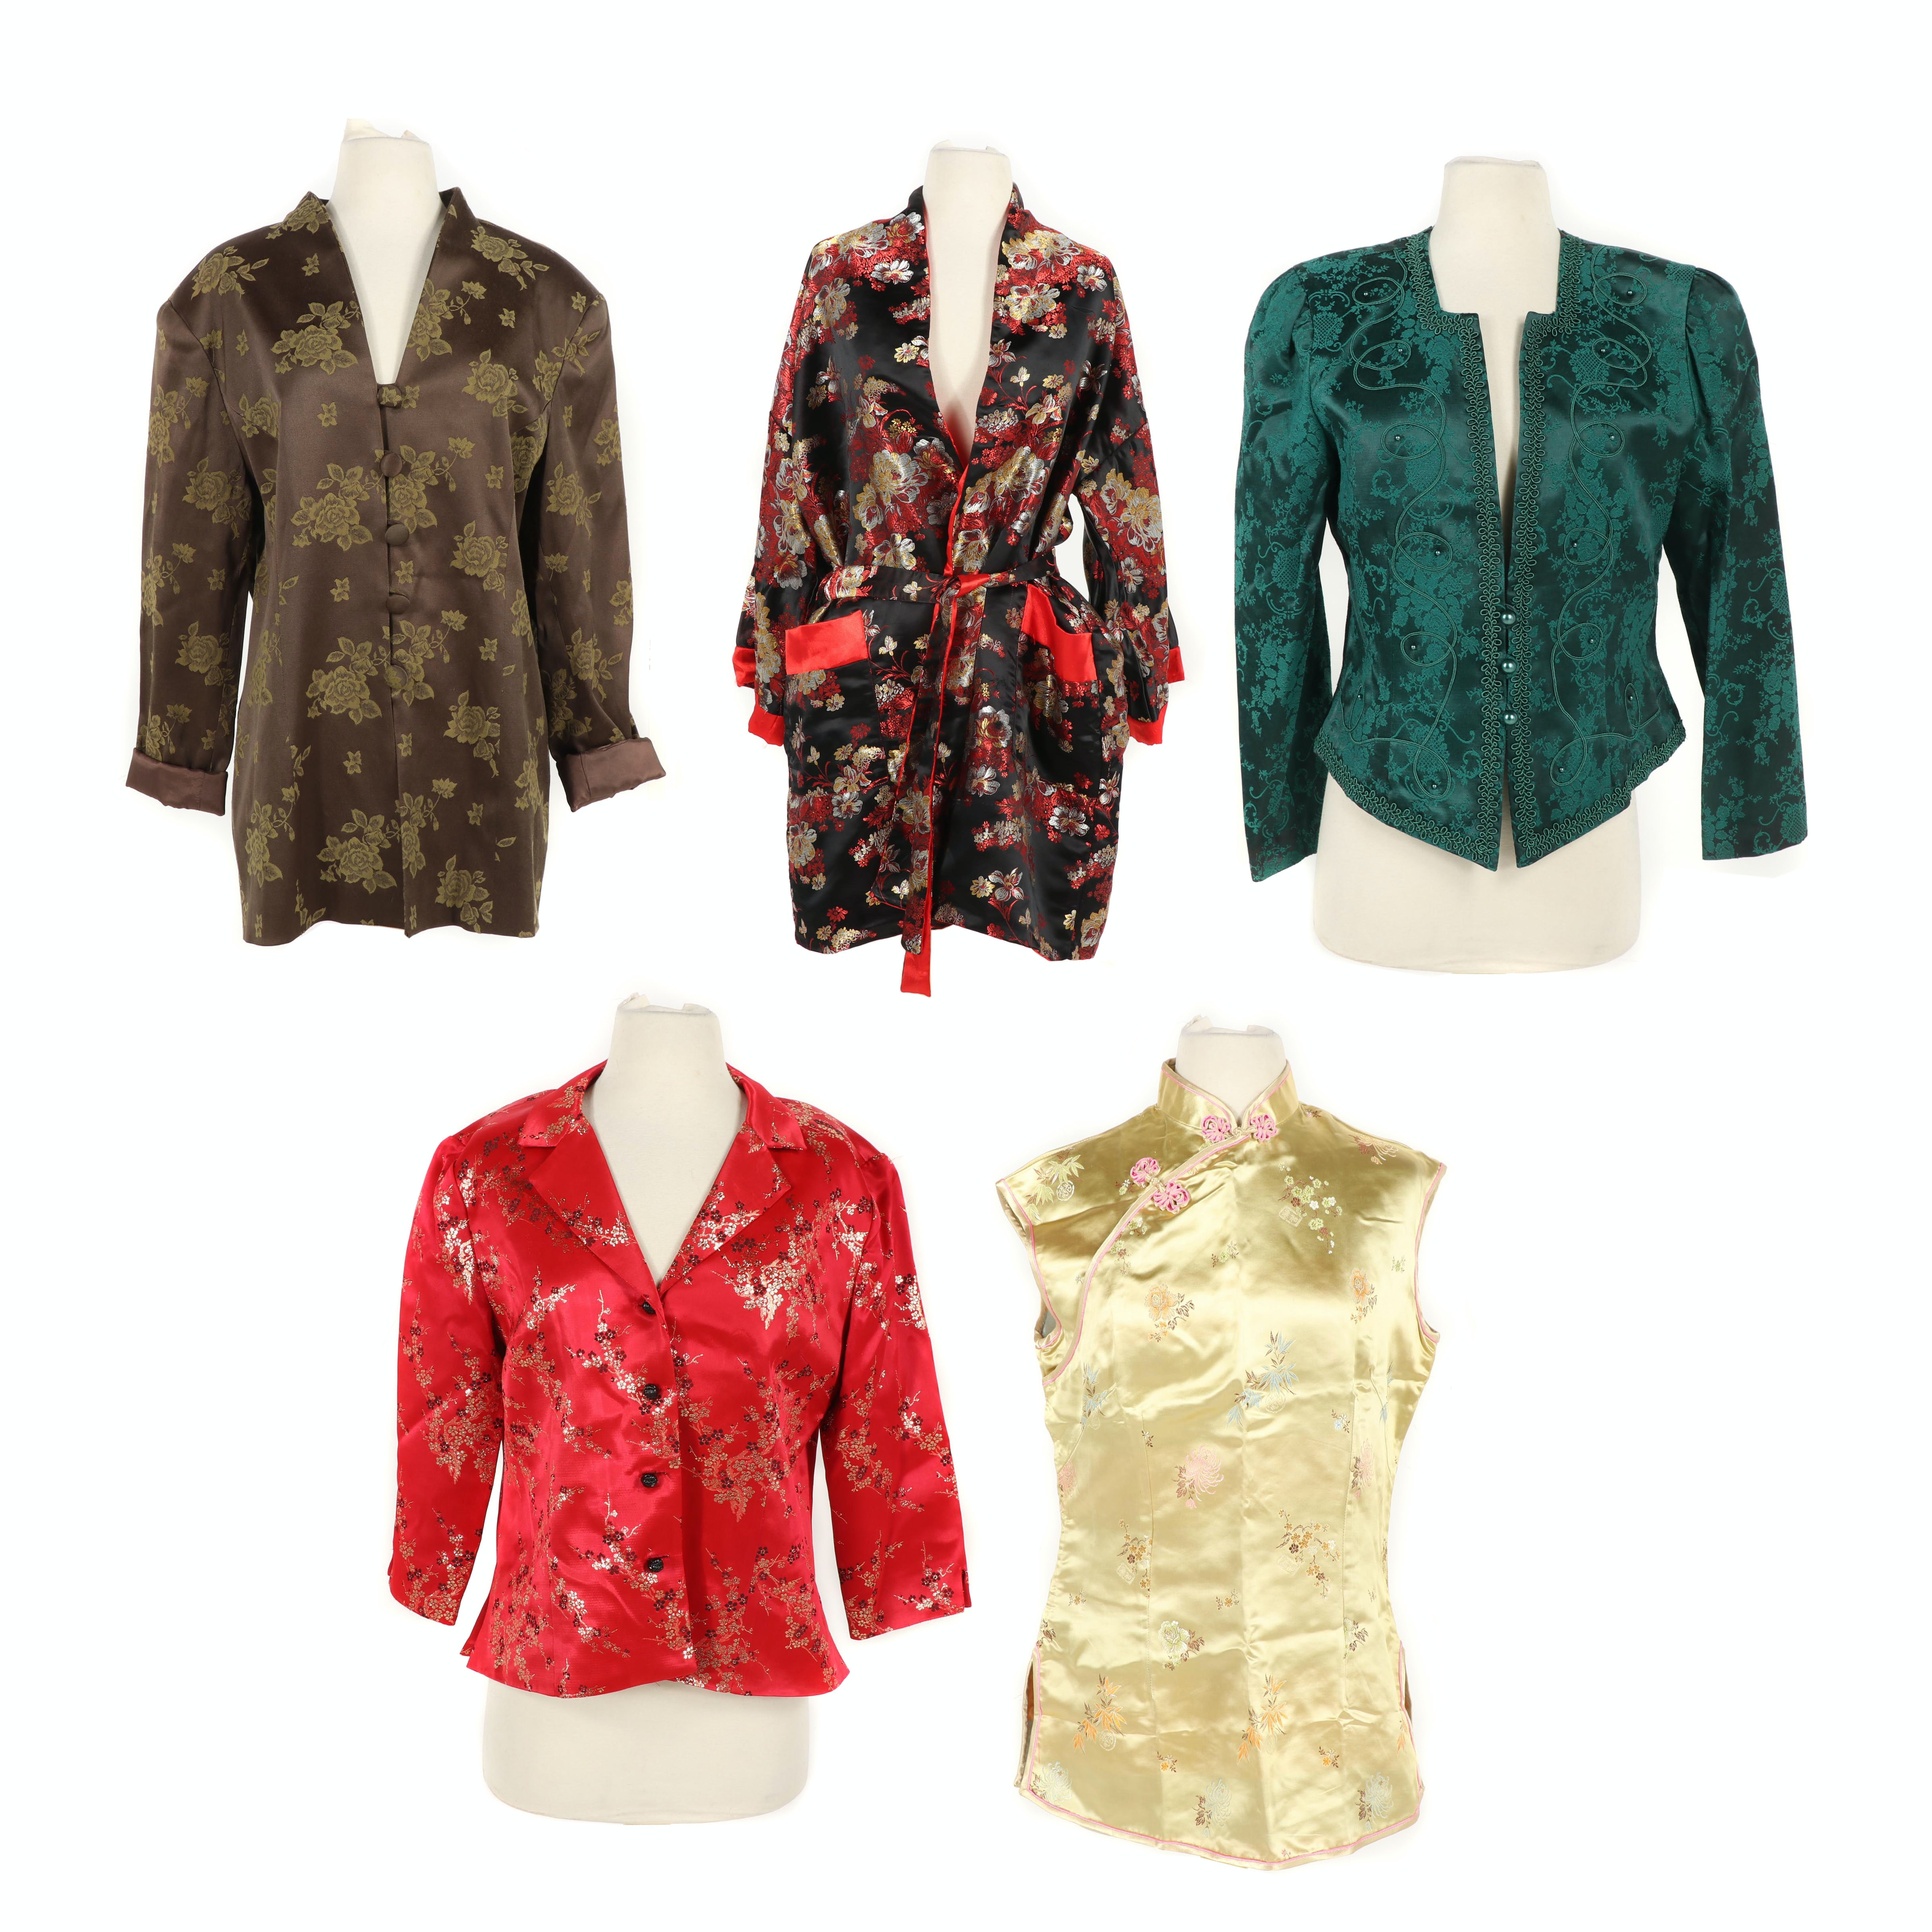 Women's Silk and Satin Brocade Jackets, Robes and Vest Including Asian-Inspired